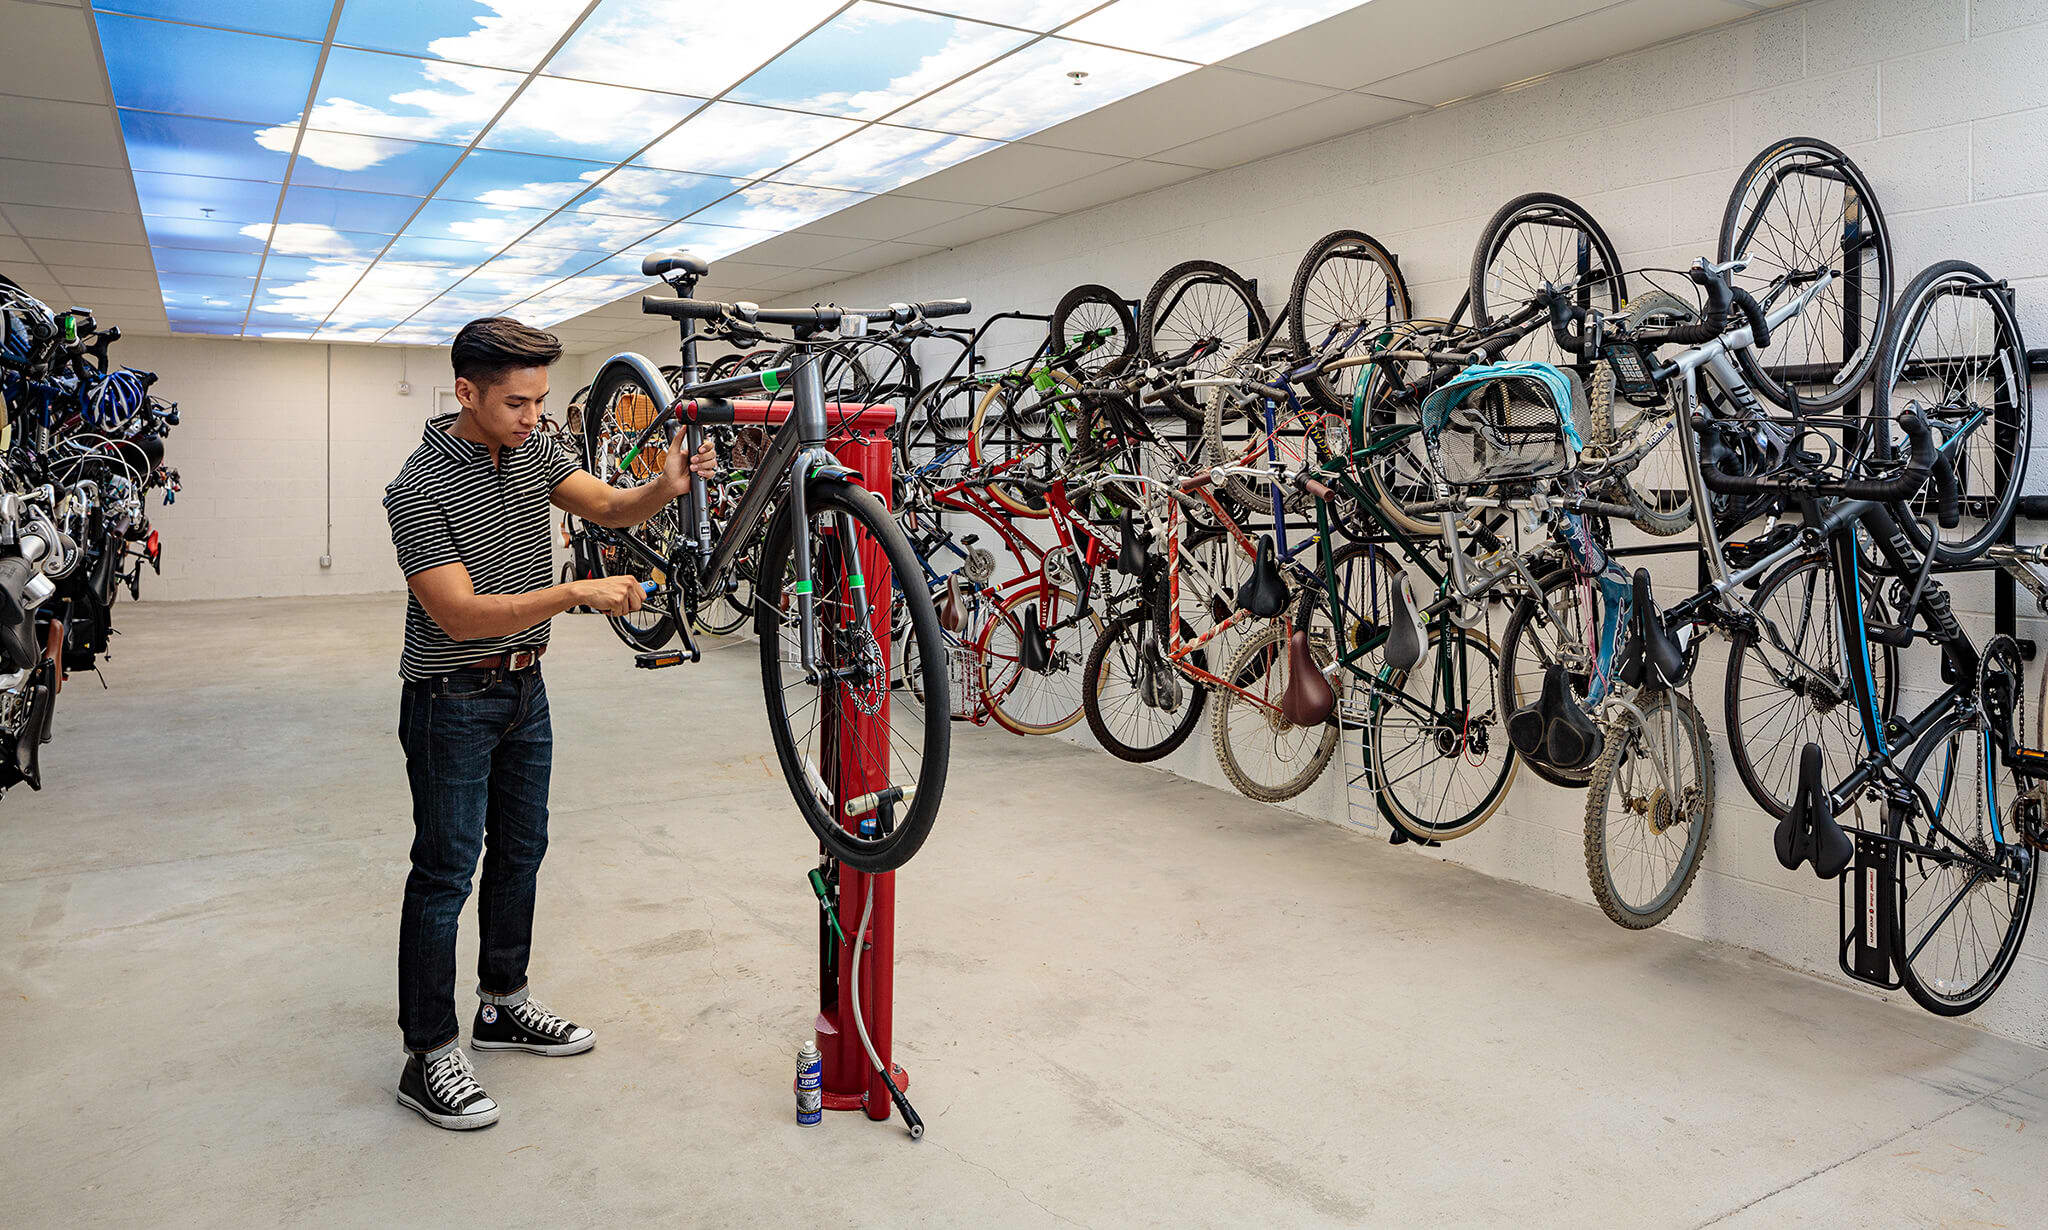 A young man fixing his bicycle in an indoor bicycle room